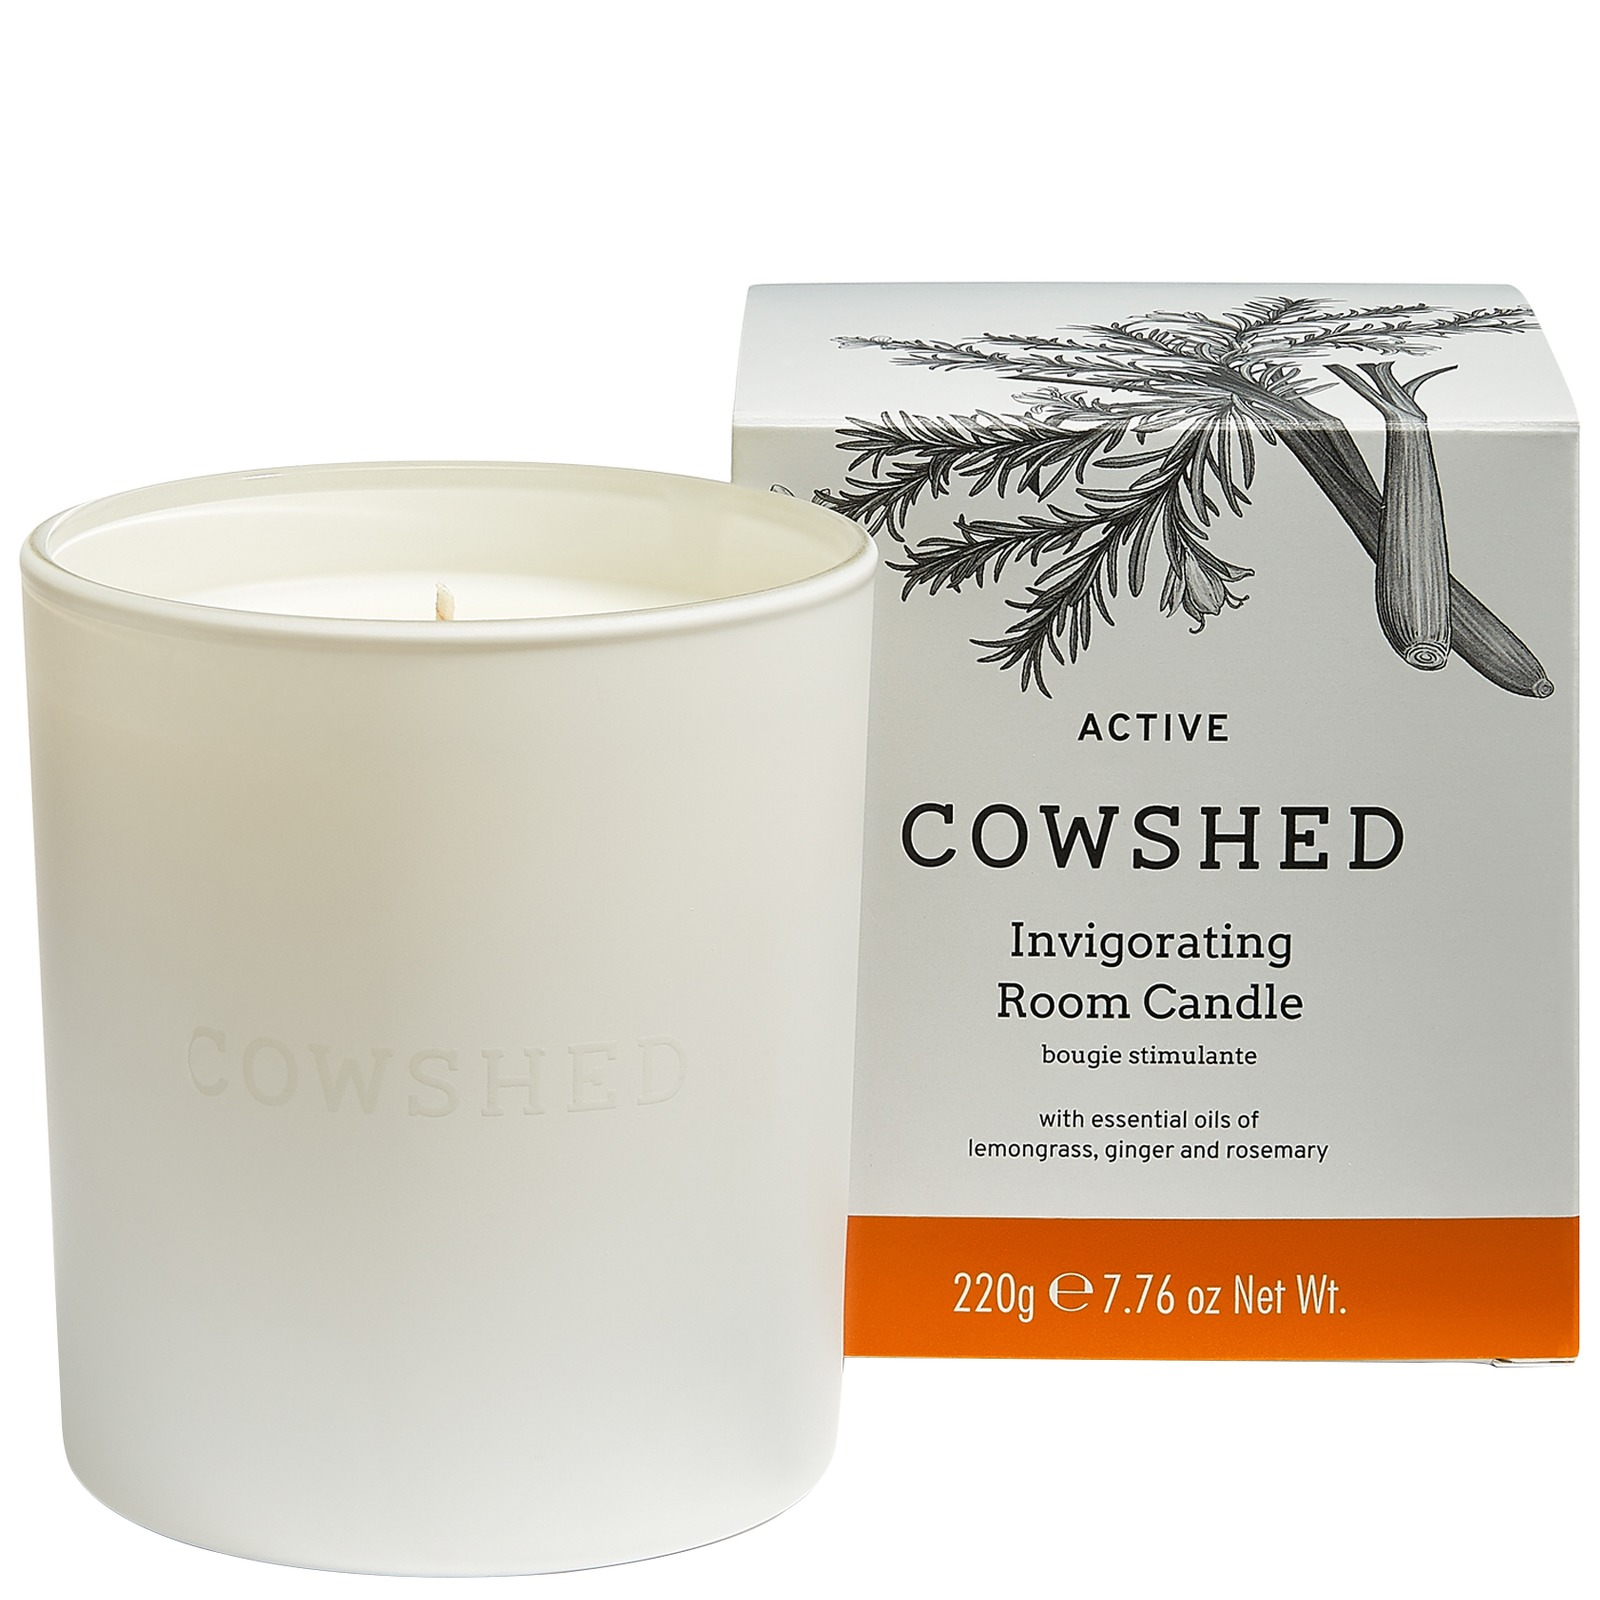 Cowshed At Home Active Invigorating Room Candle 220g